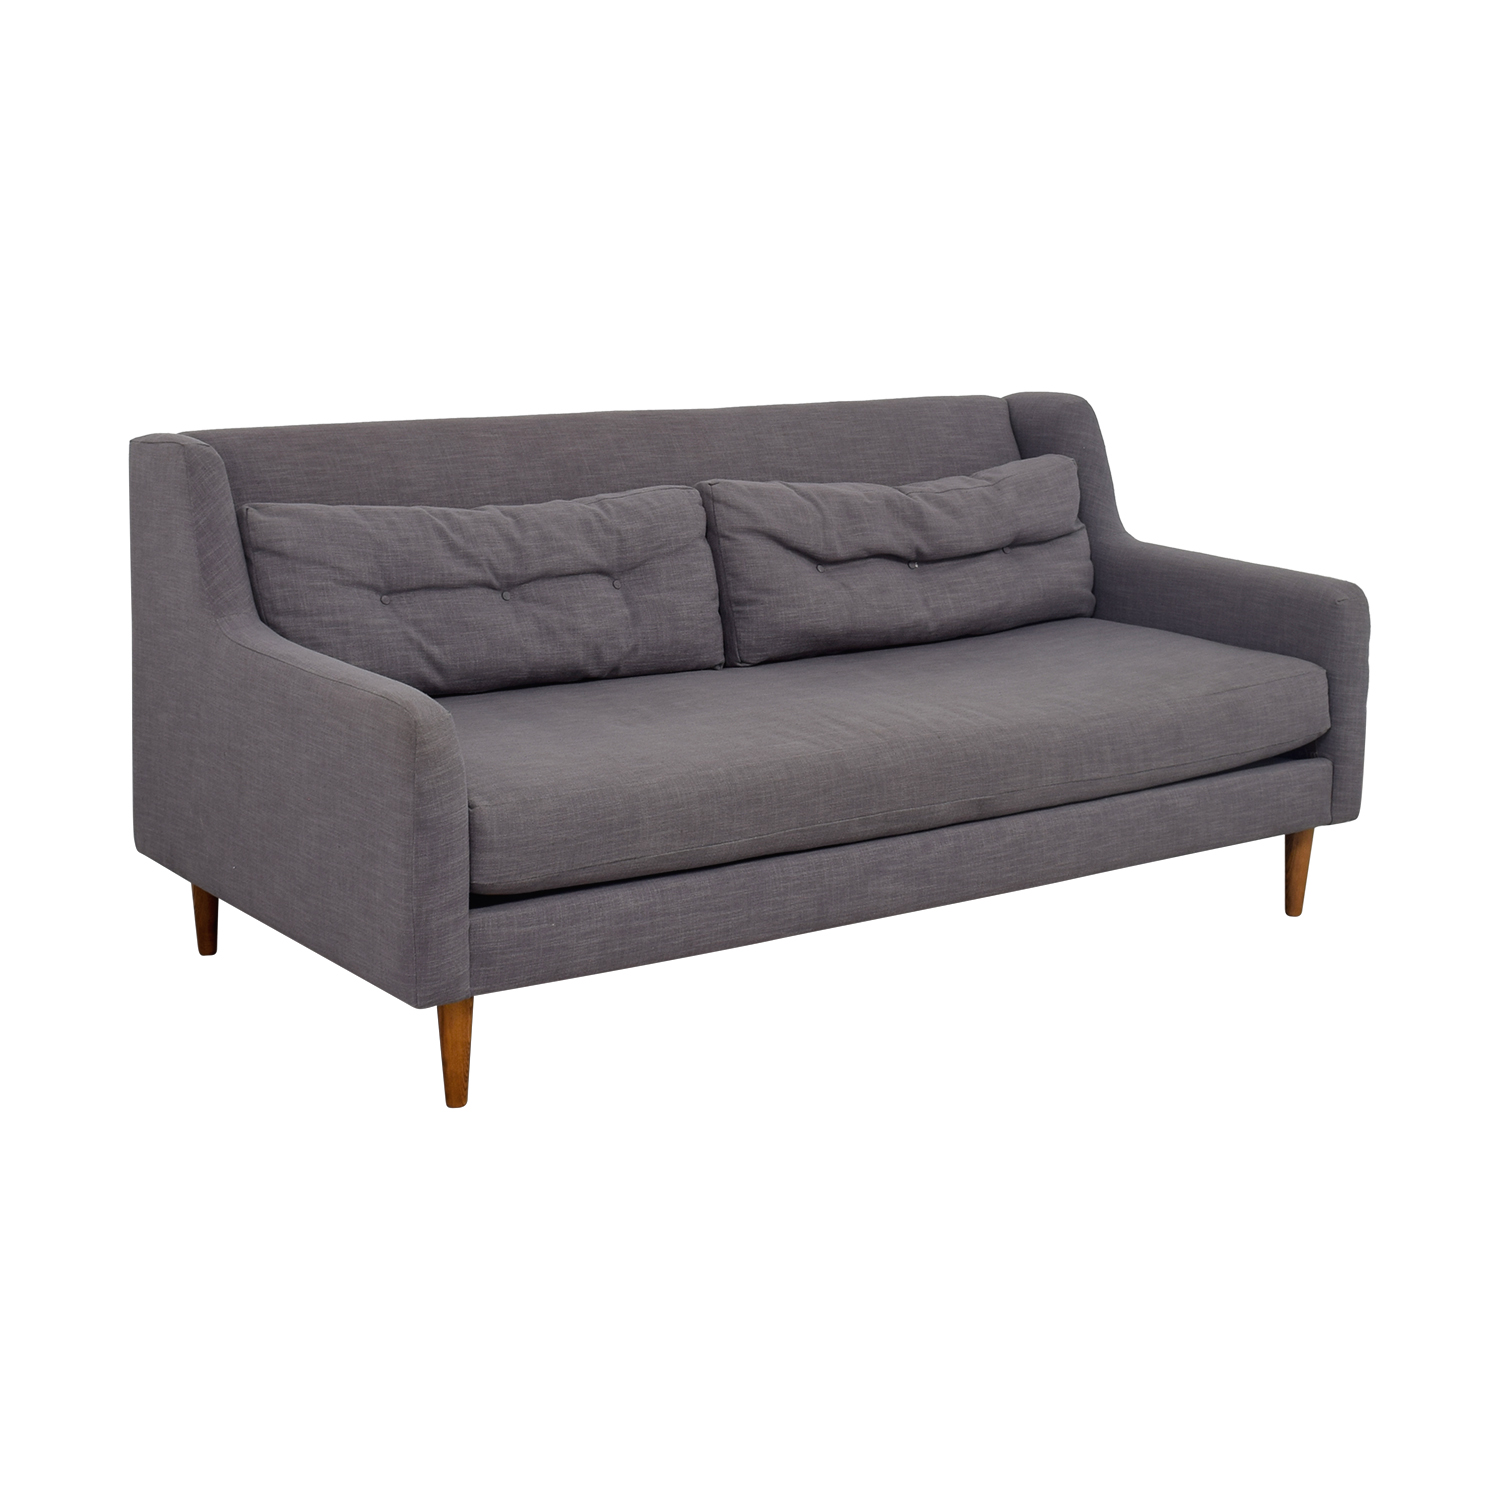 West Elm West Elm Crosby Grey Mid-Century Couch grey